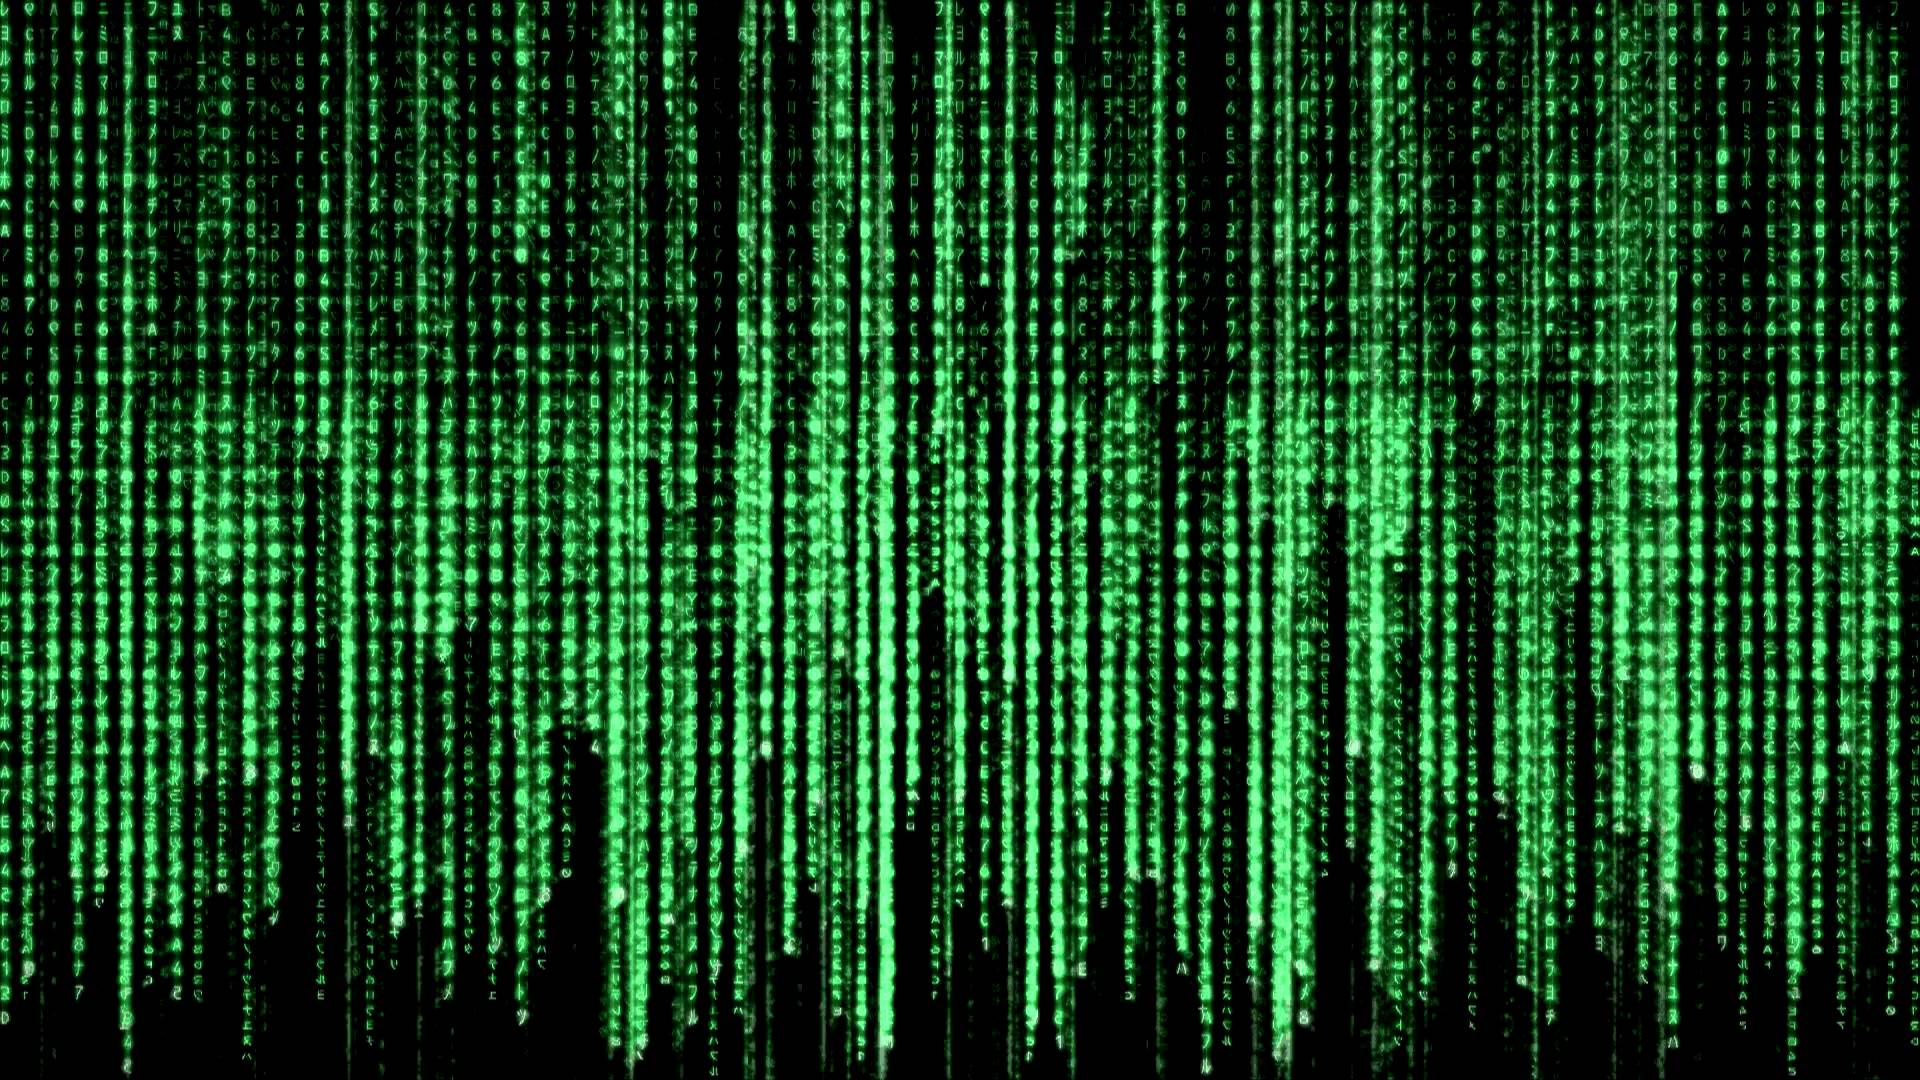 desktop-matrix-hd-wallpapers-images-download | wallpaper.wiki